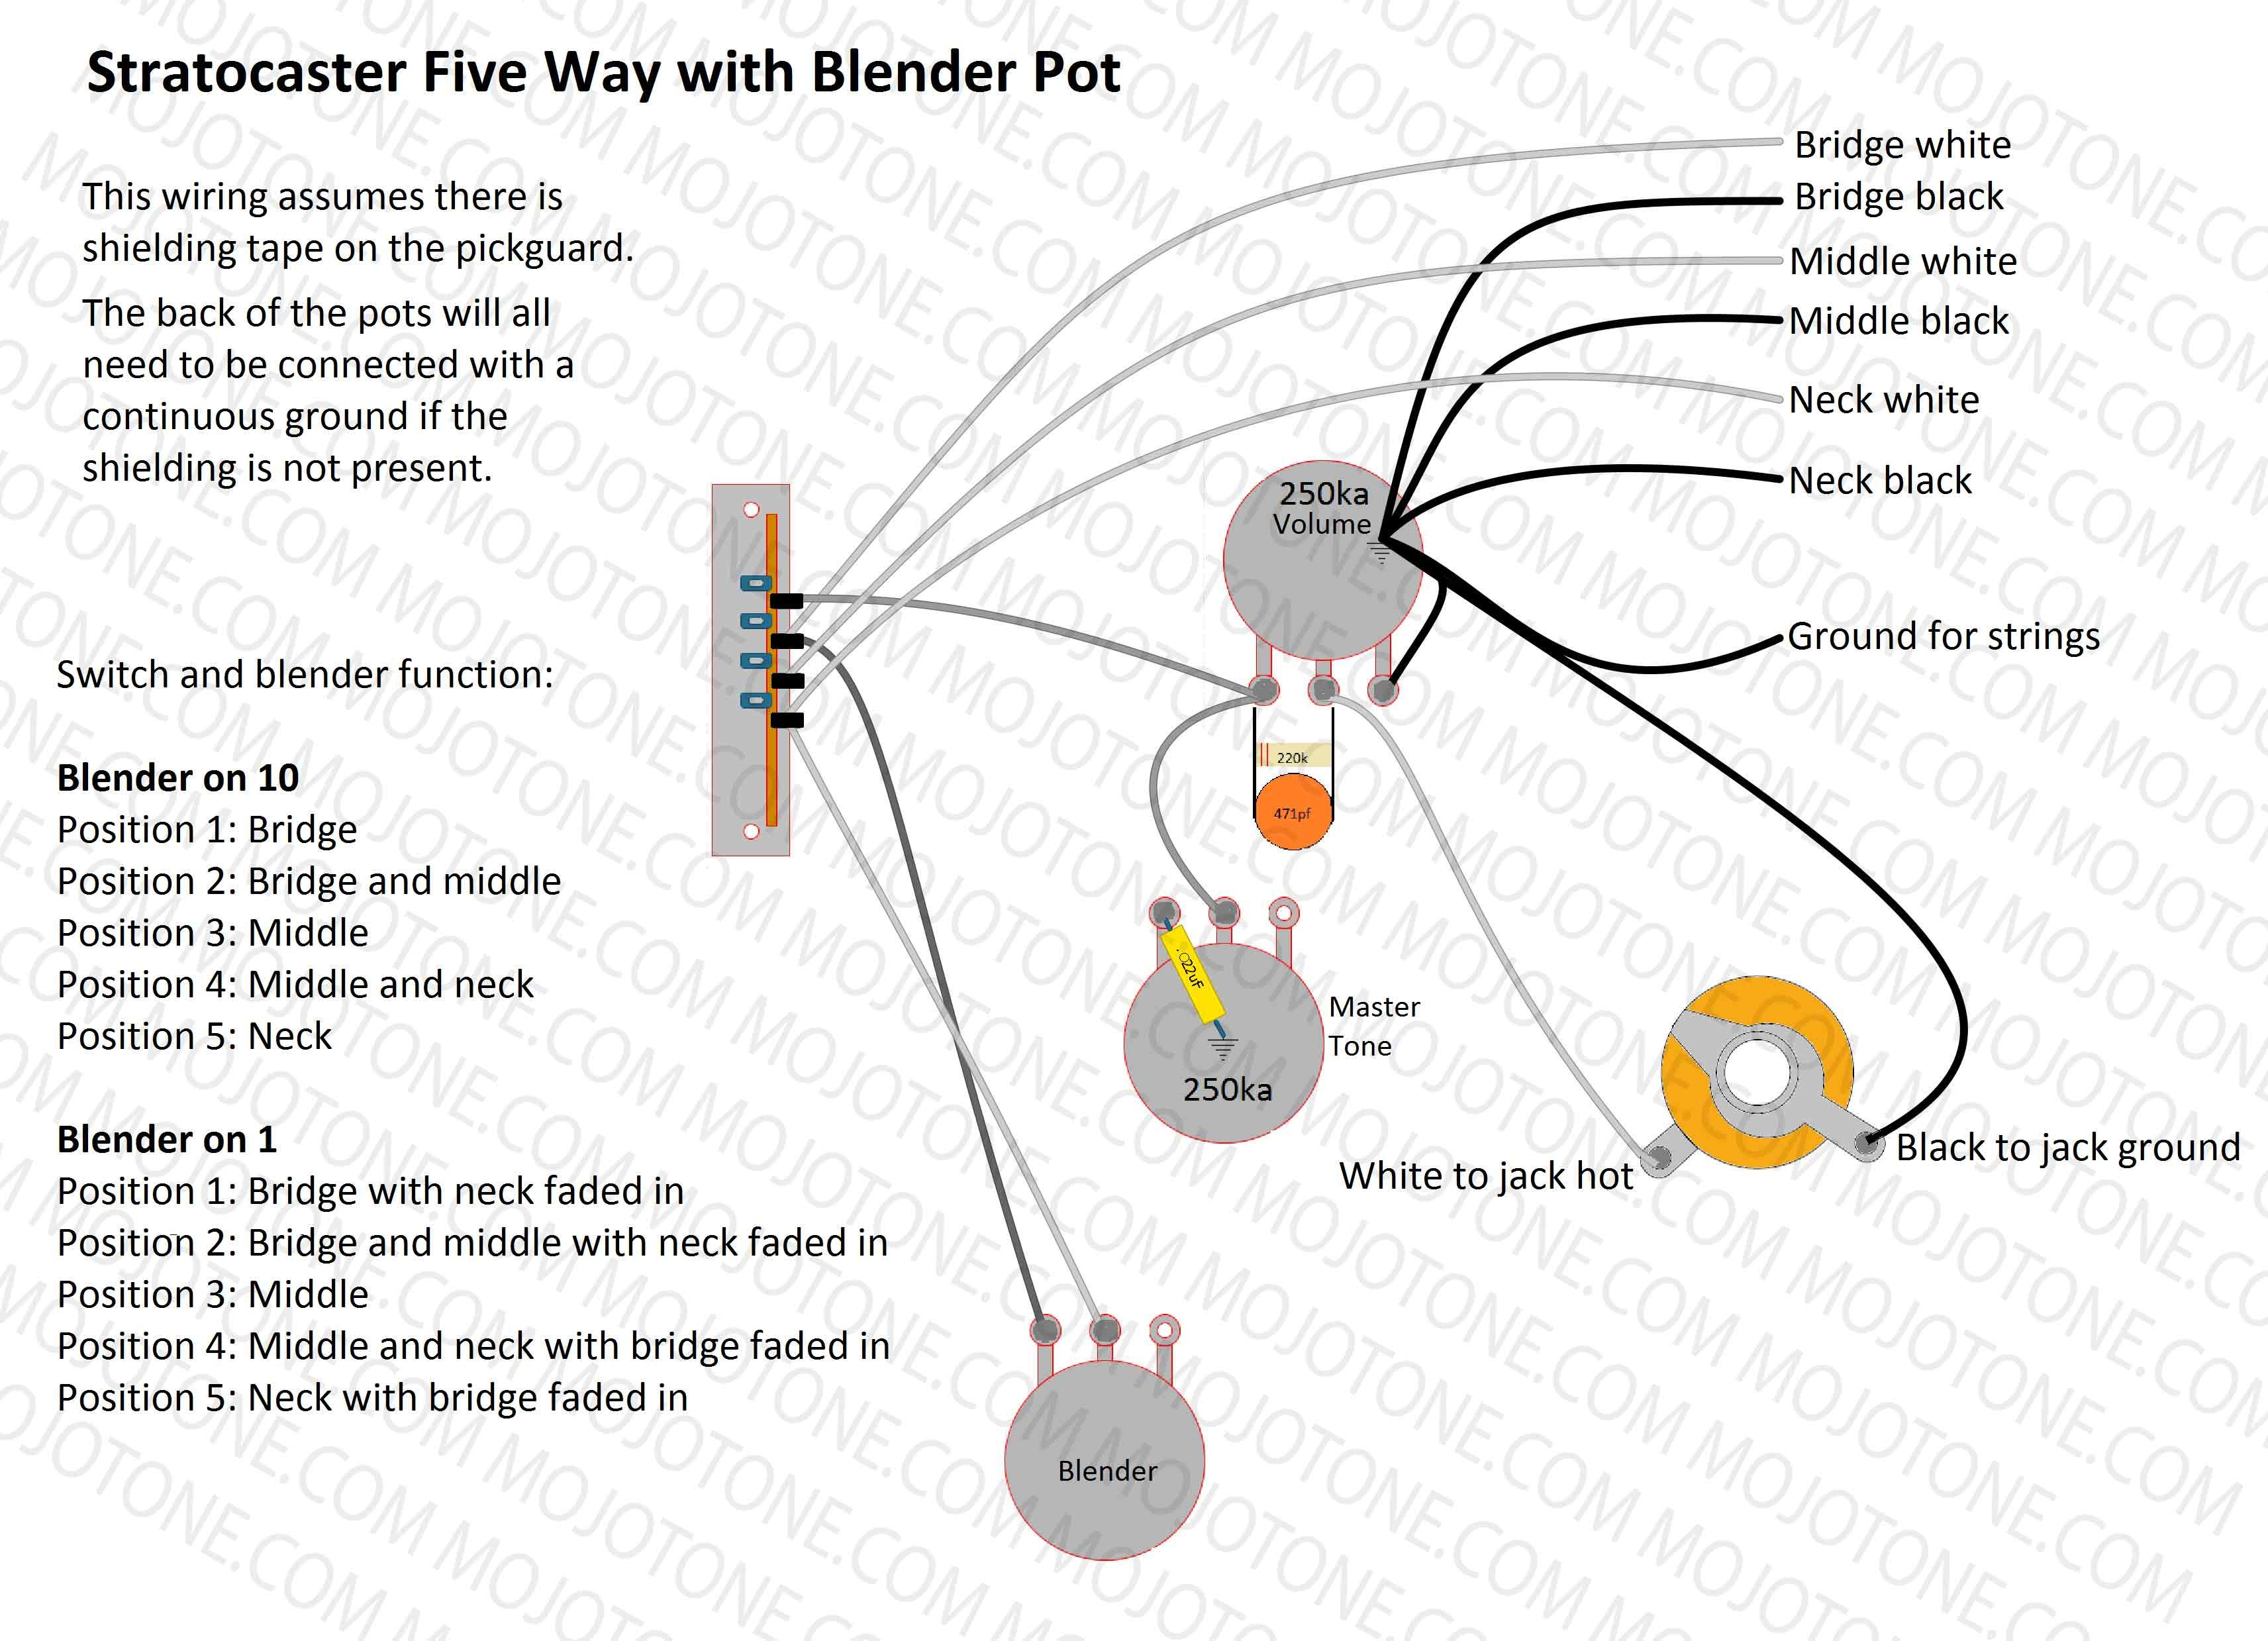 medium resolution of stratocaster blender wiring diagram